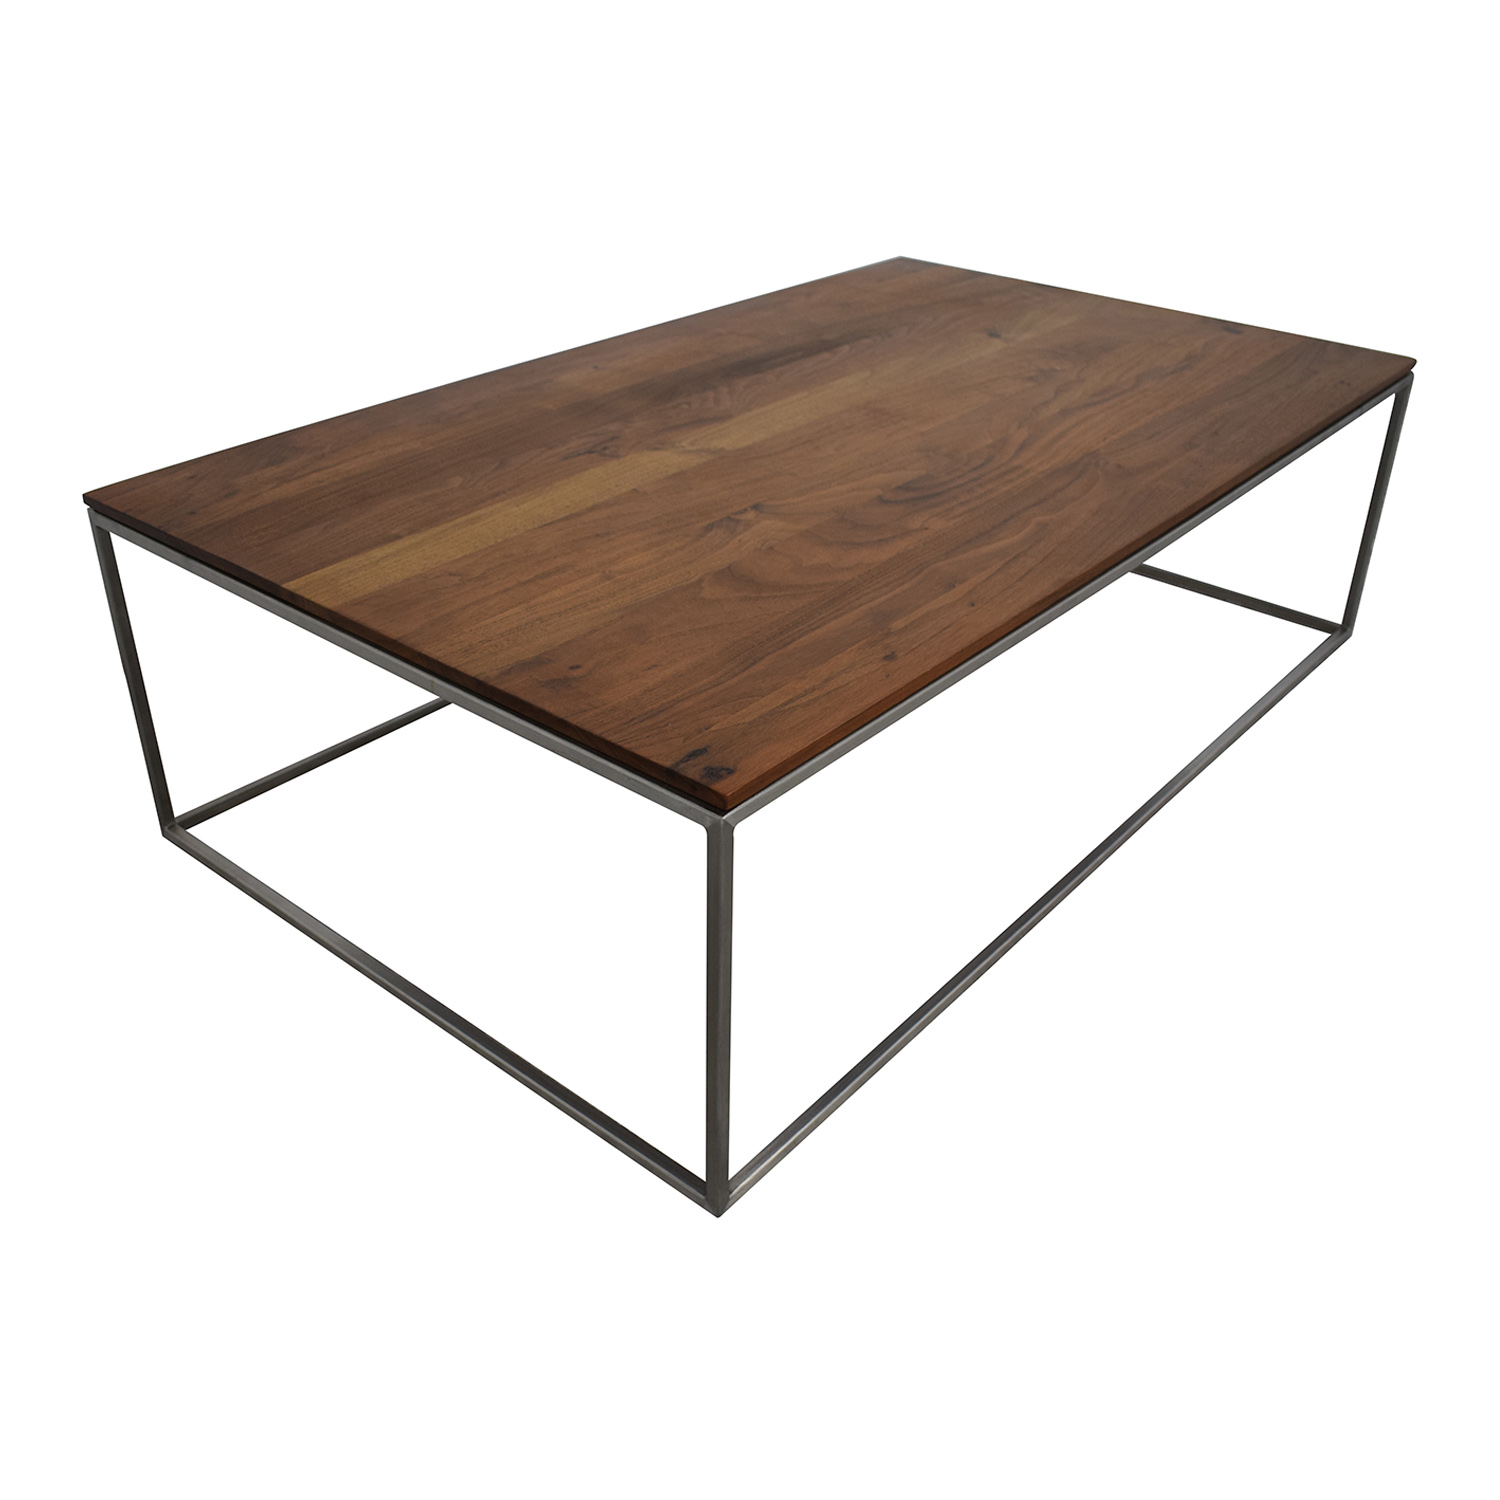 Crate & Barrel Crate & Barrel Frame Medium Coffee Table nyc